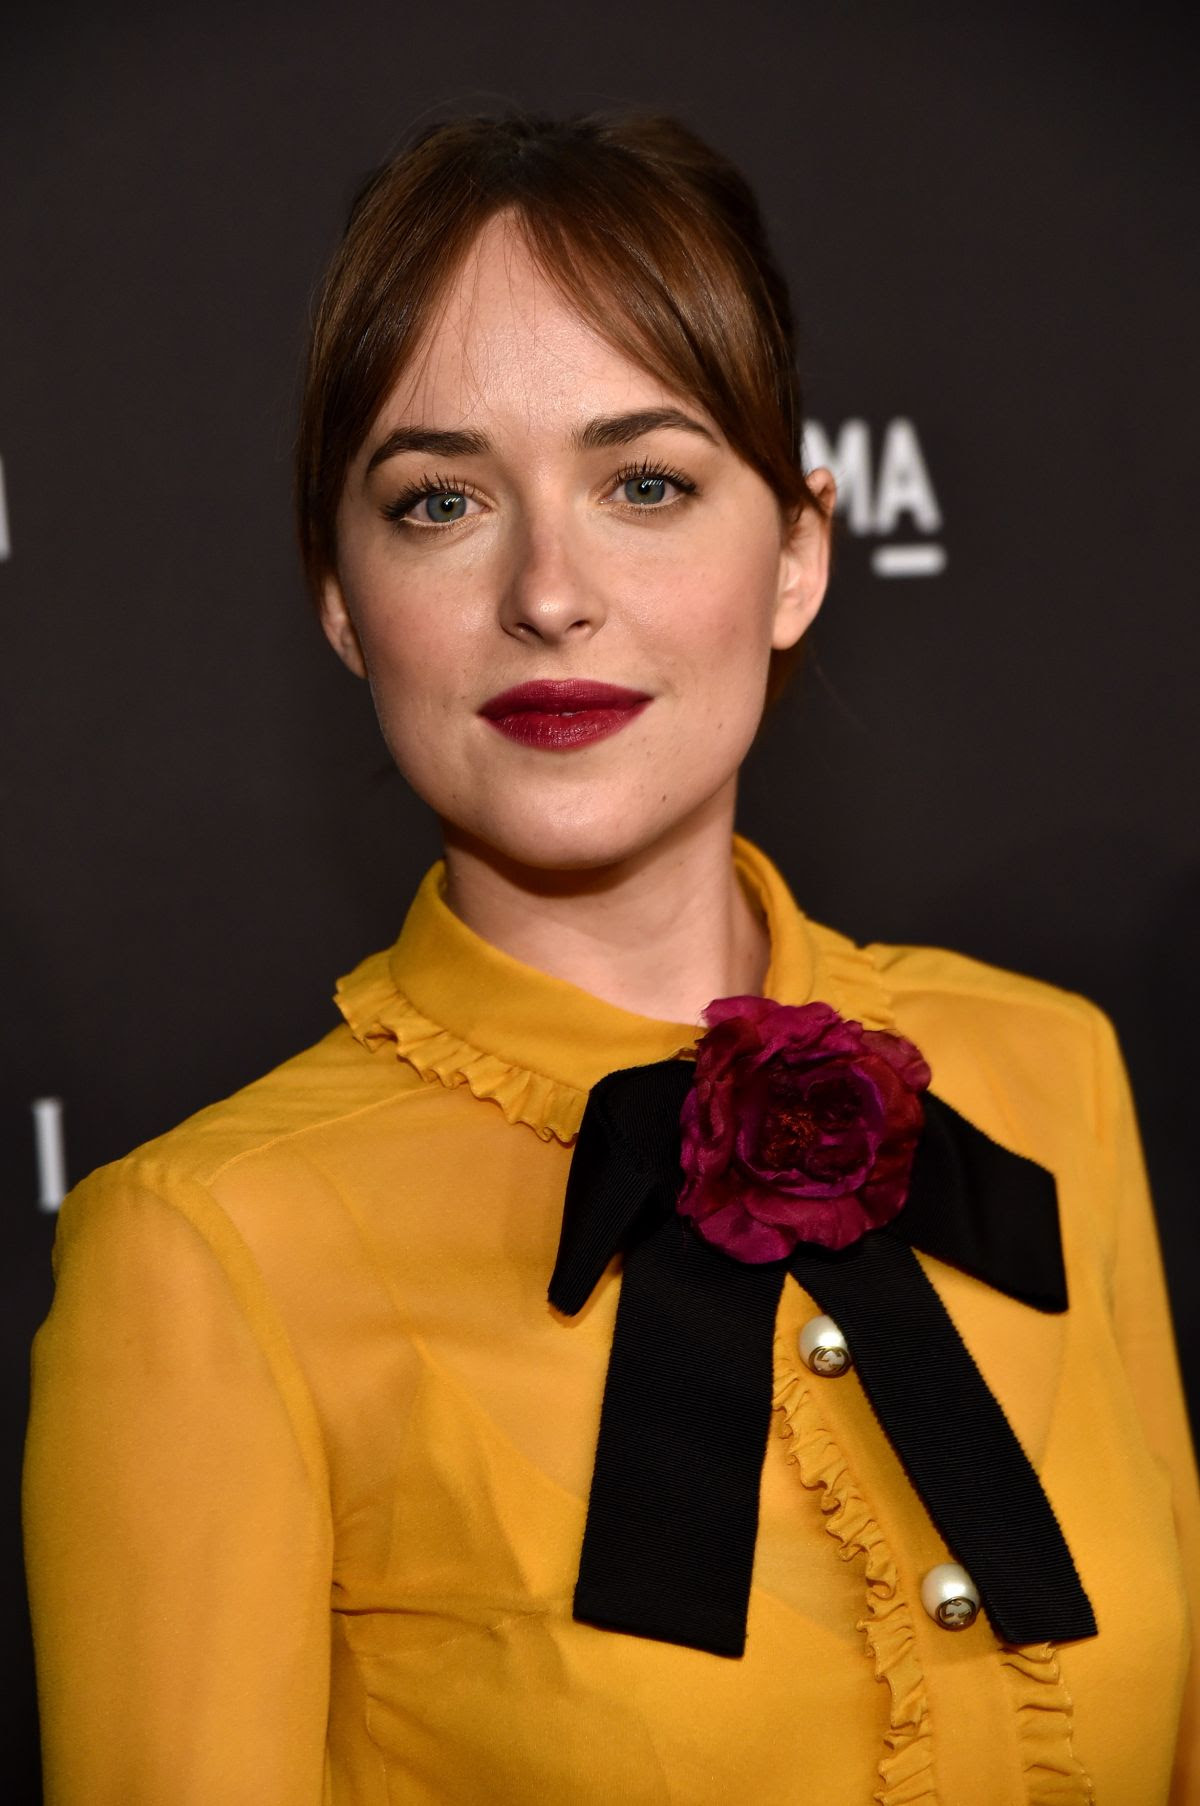 DAKOTA JOHNSON at LACMA 2015 Art+Film Gala Honoring James Turrell and Alejandro G Inarritu in Los Angeles 11/07/2015